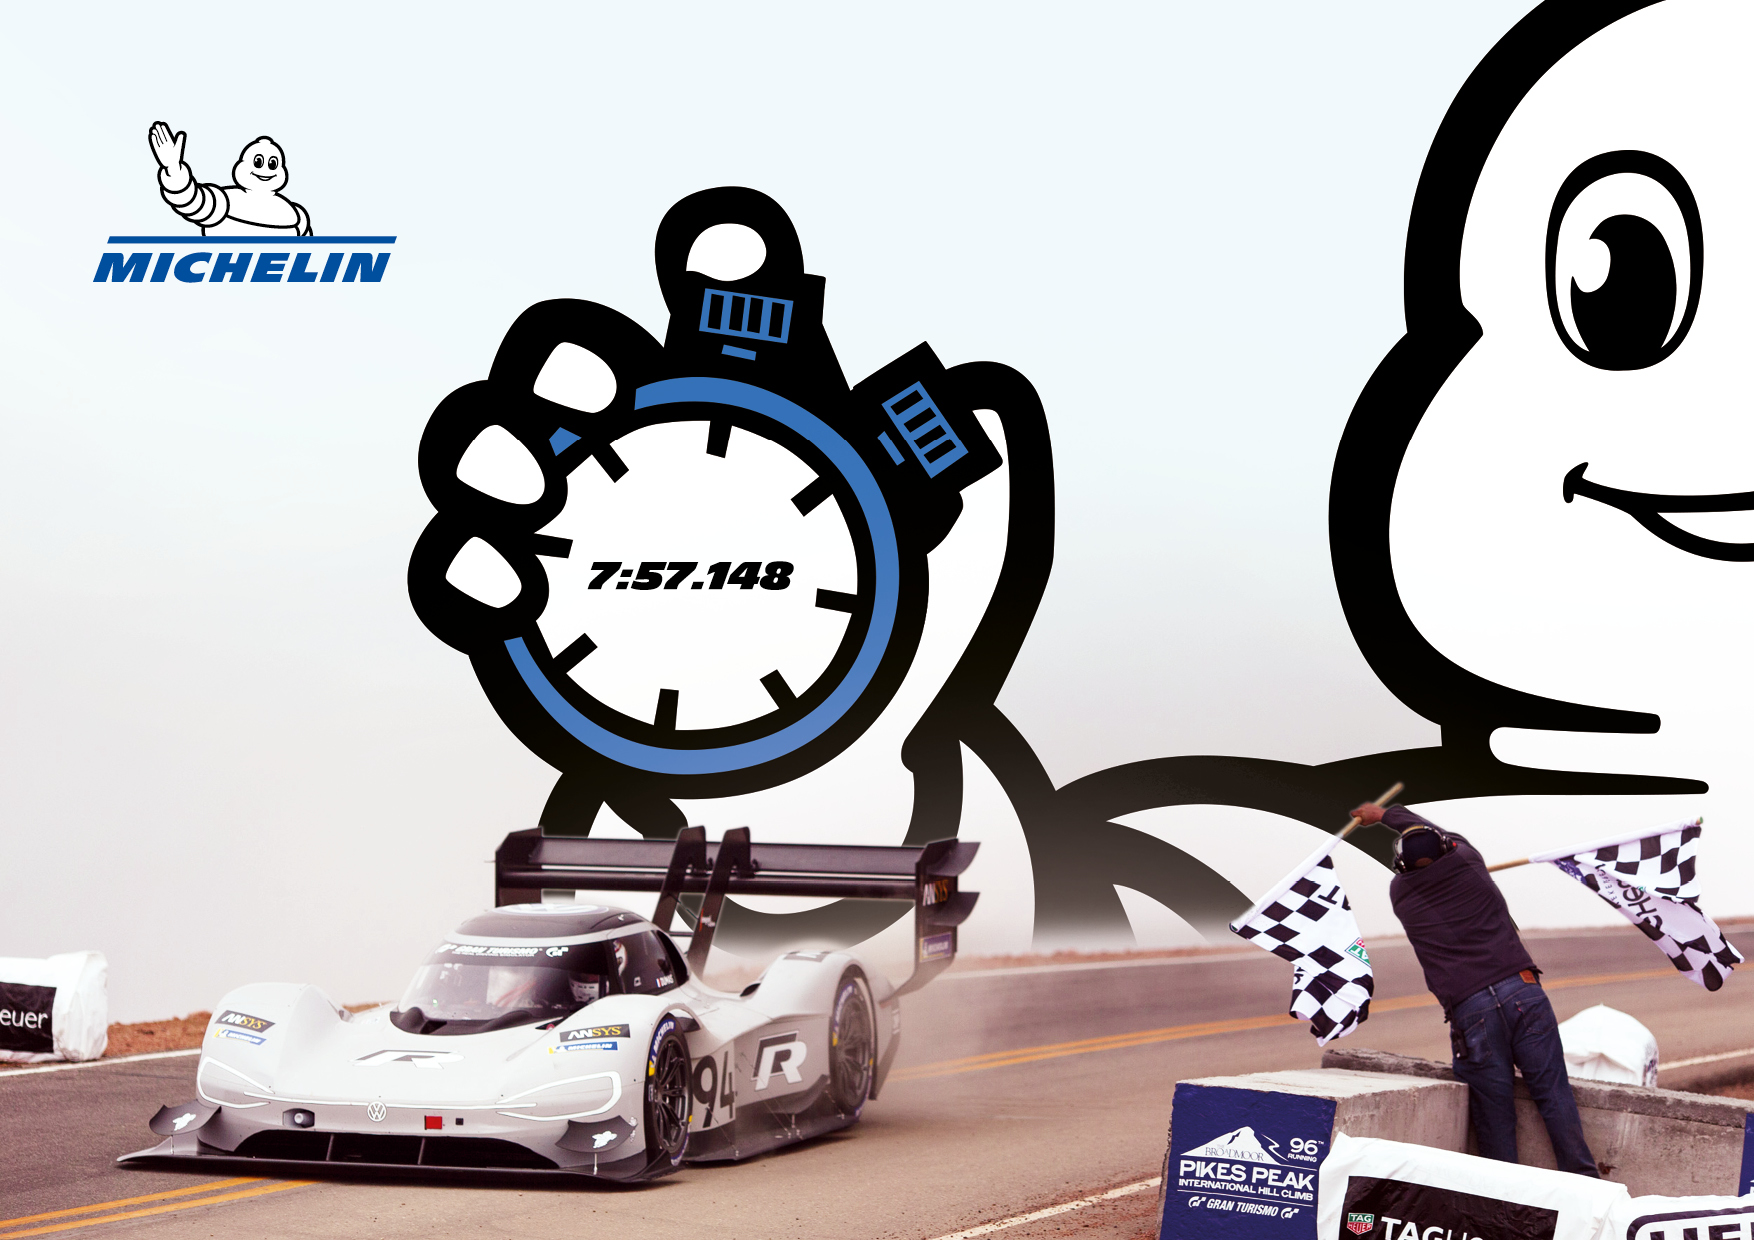 MICHELIN_PikesPeak_A43